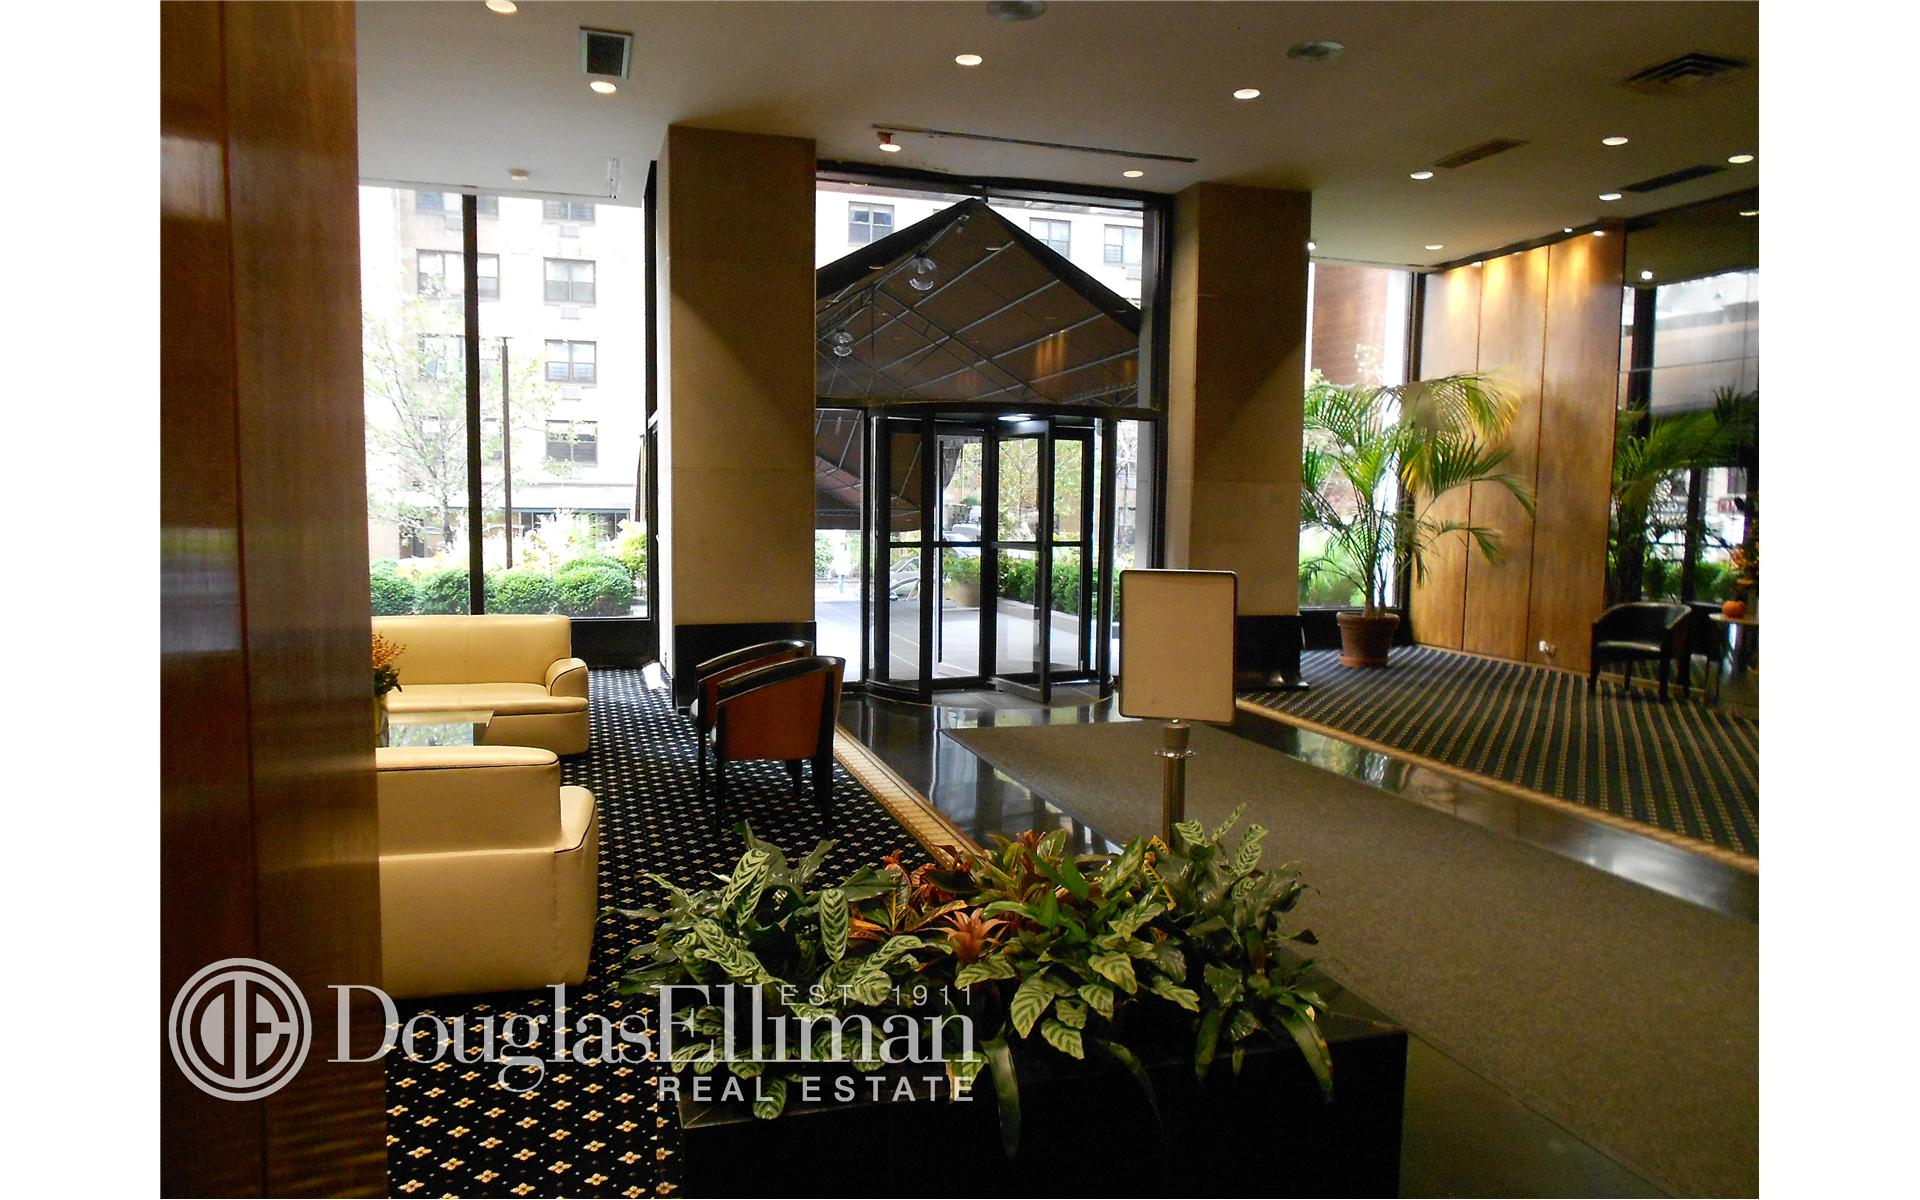 Condominium for Sale at 345 East 80th Street New York, New York 10021 United States